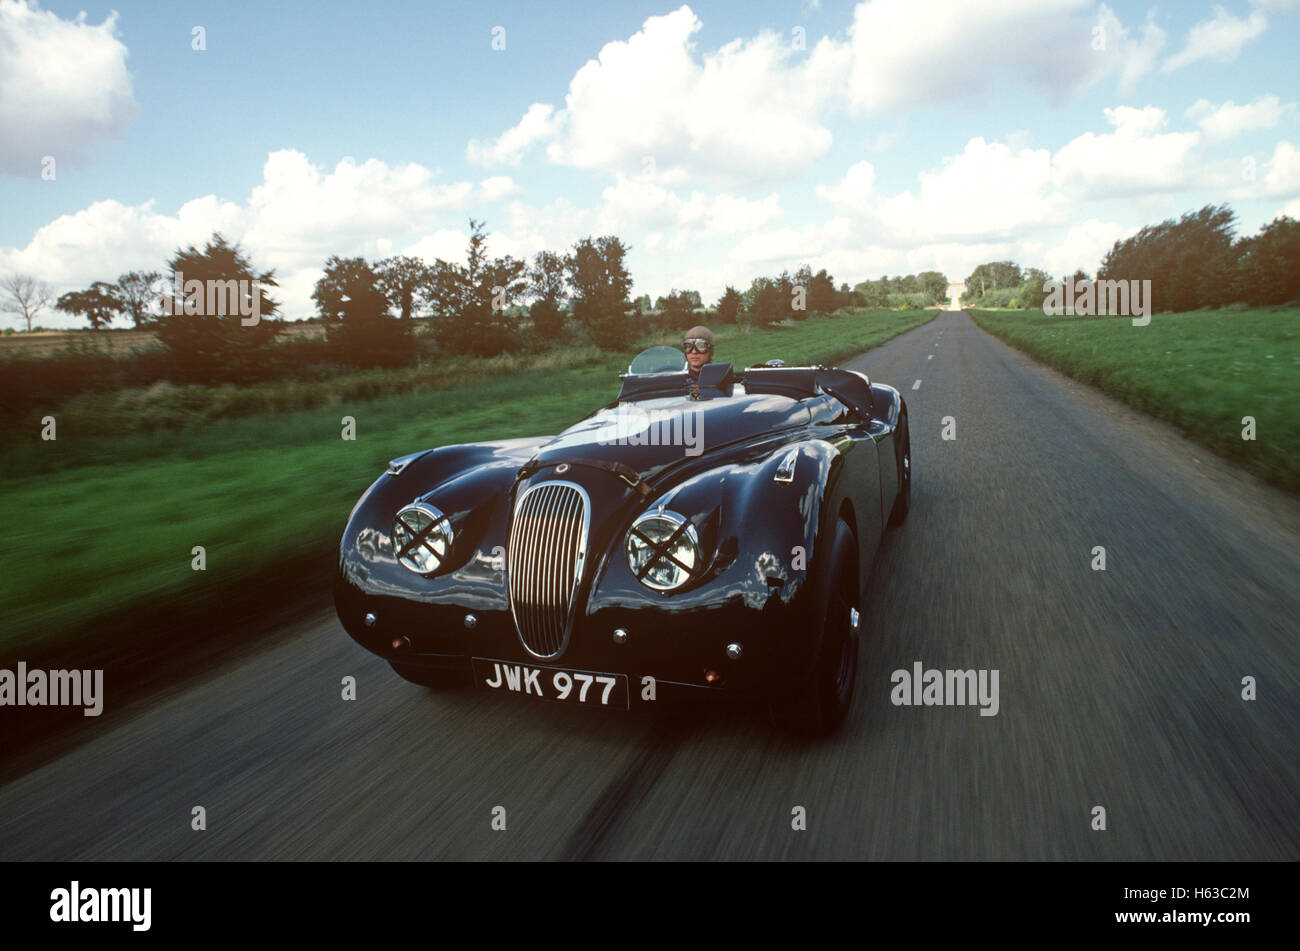 1951 Jaguar XK120 Alloy works car - Stock Image